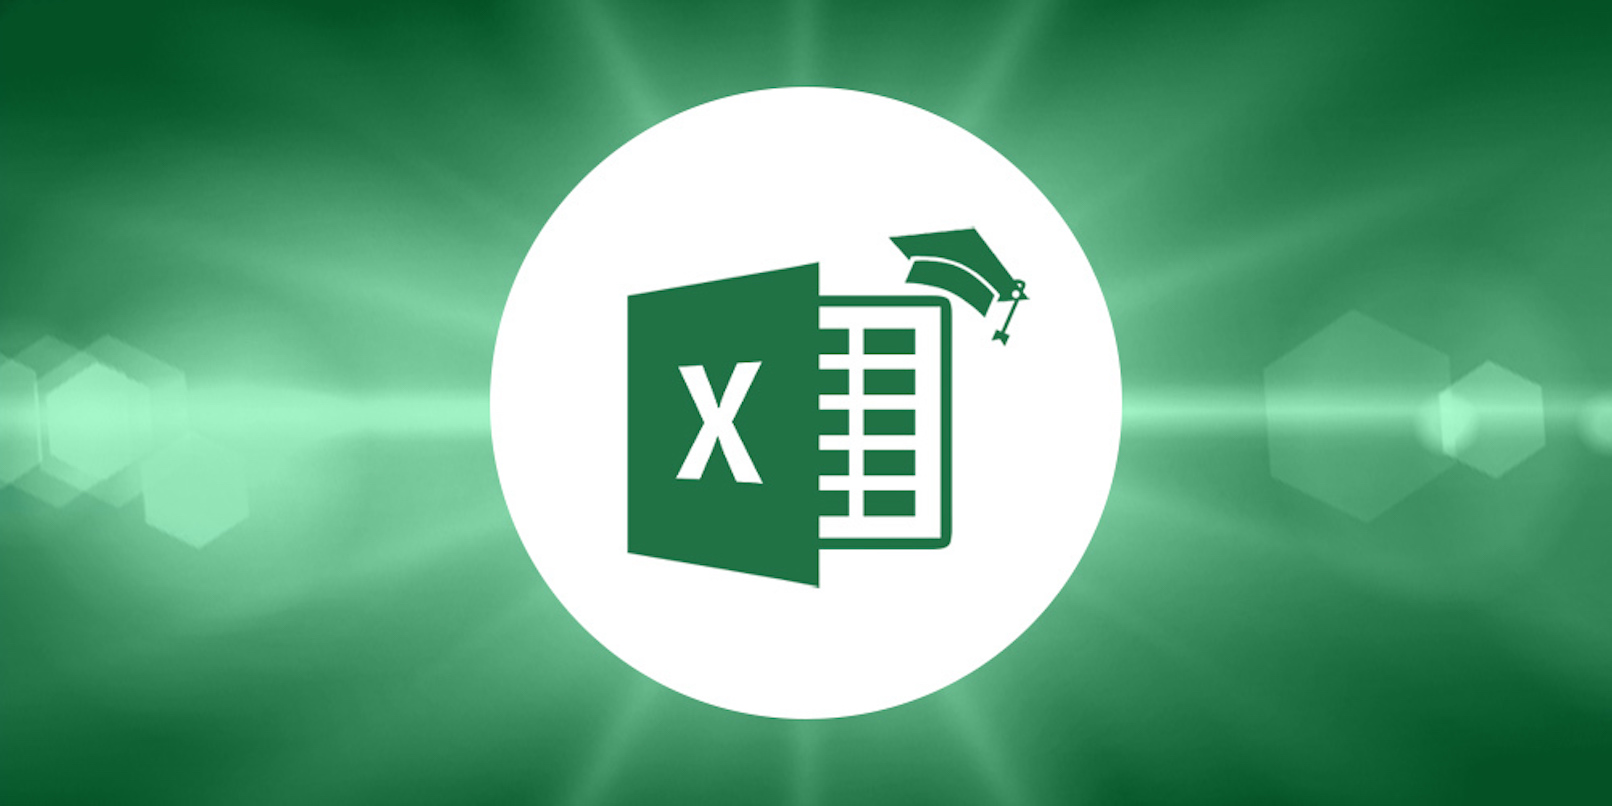 Master microsoft excel with this new 9 course bundle 95 off biocorpaavc